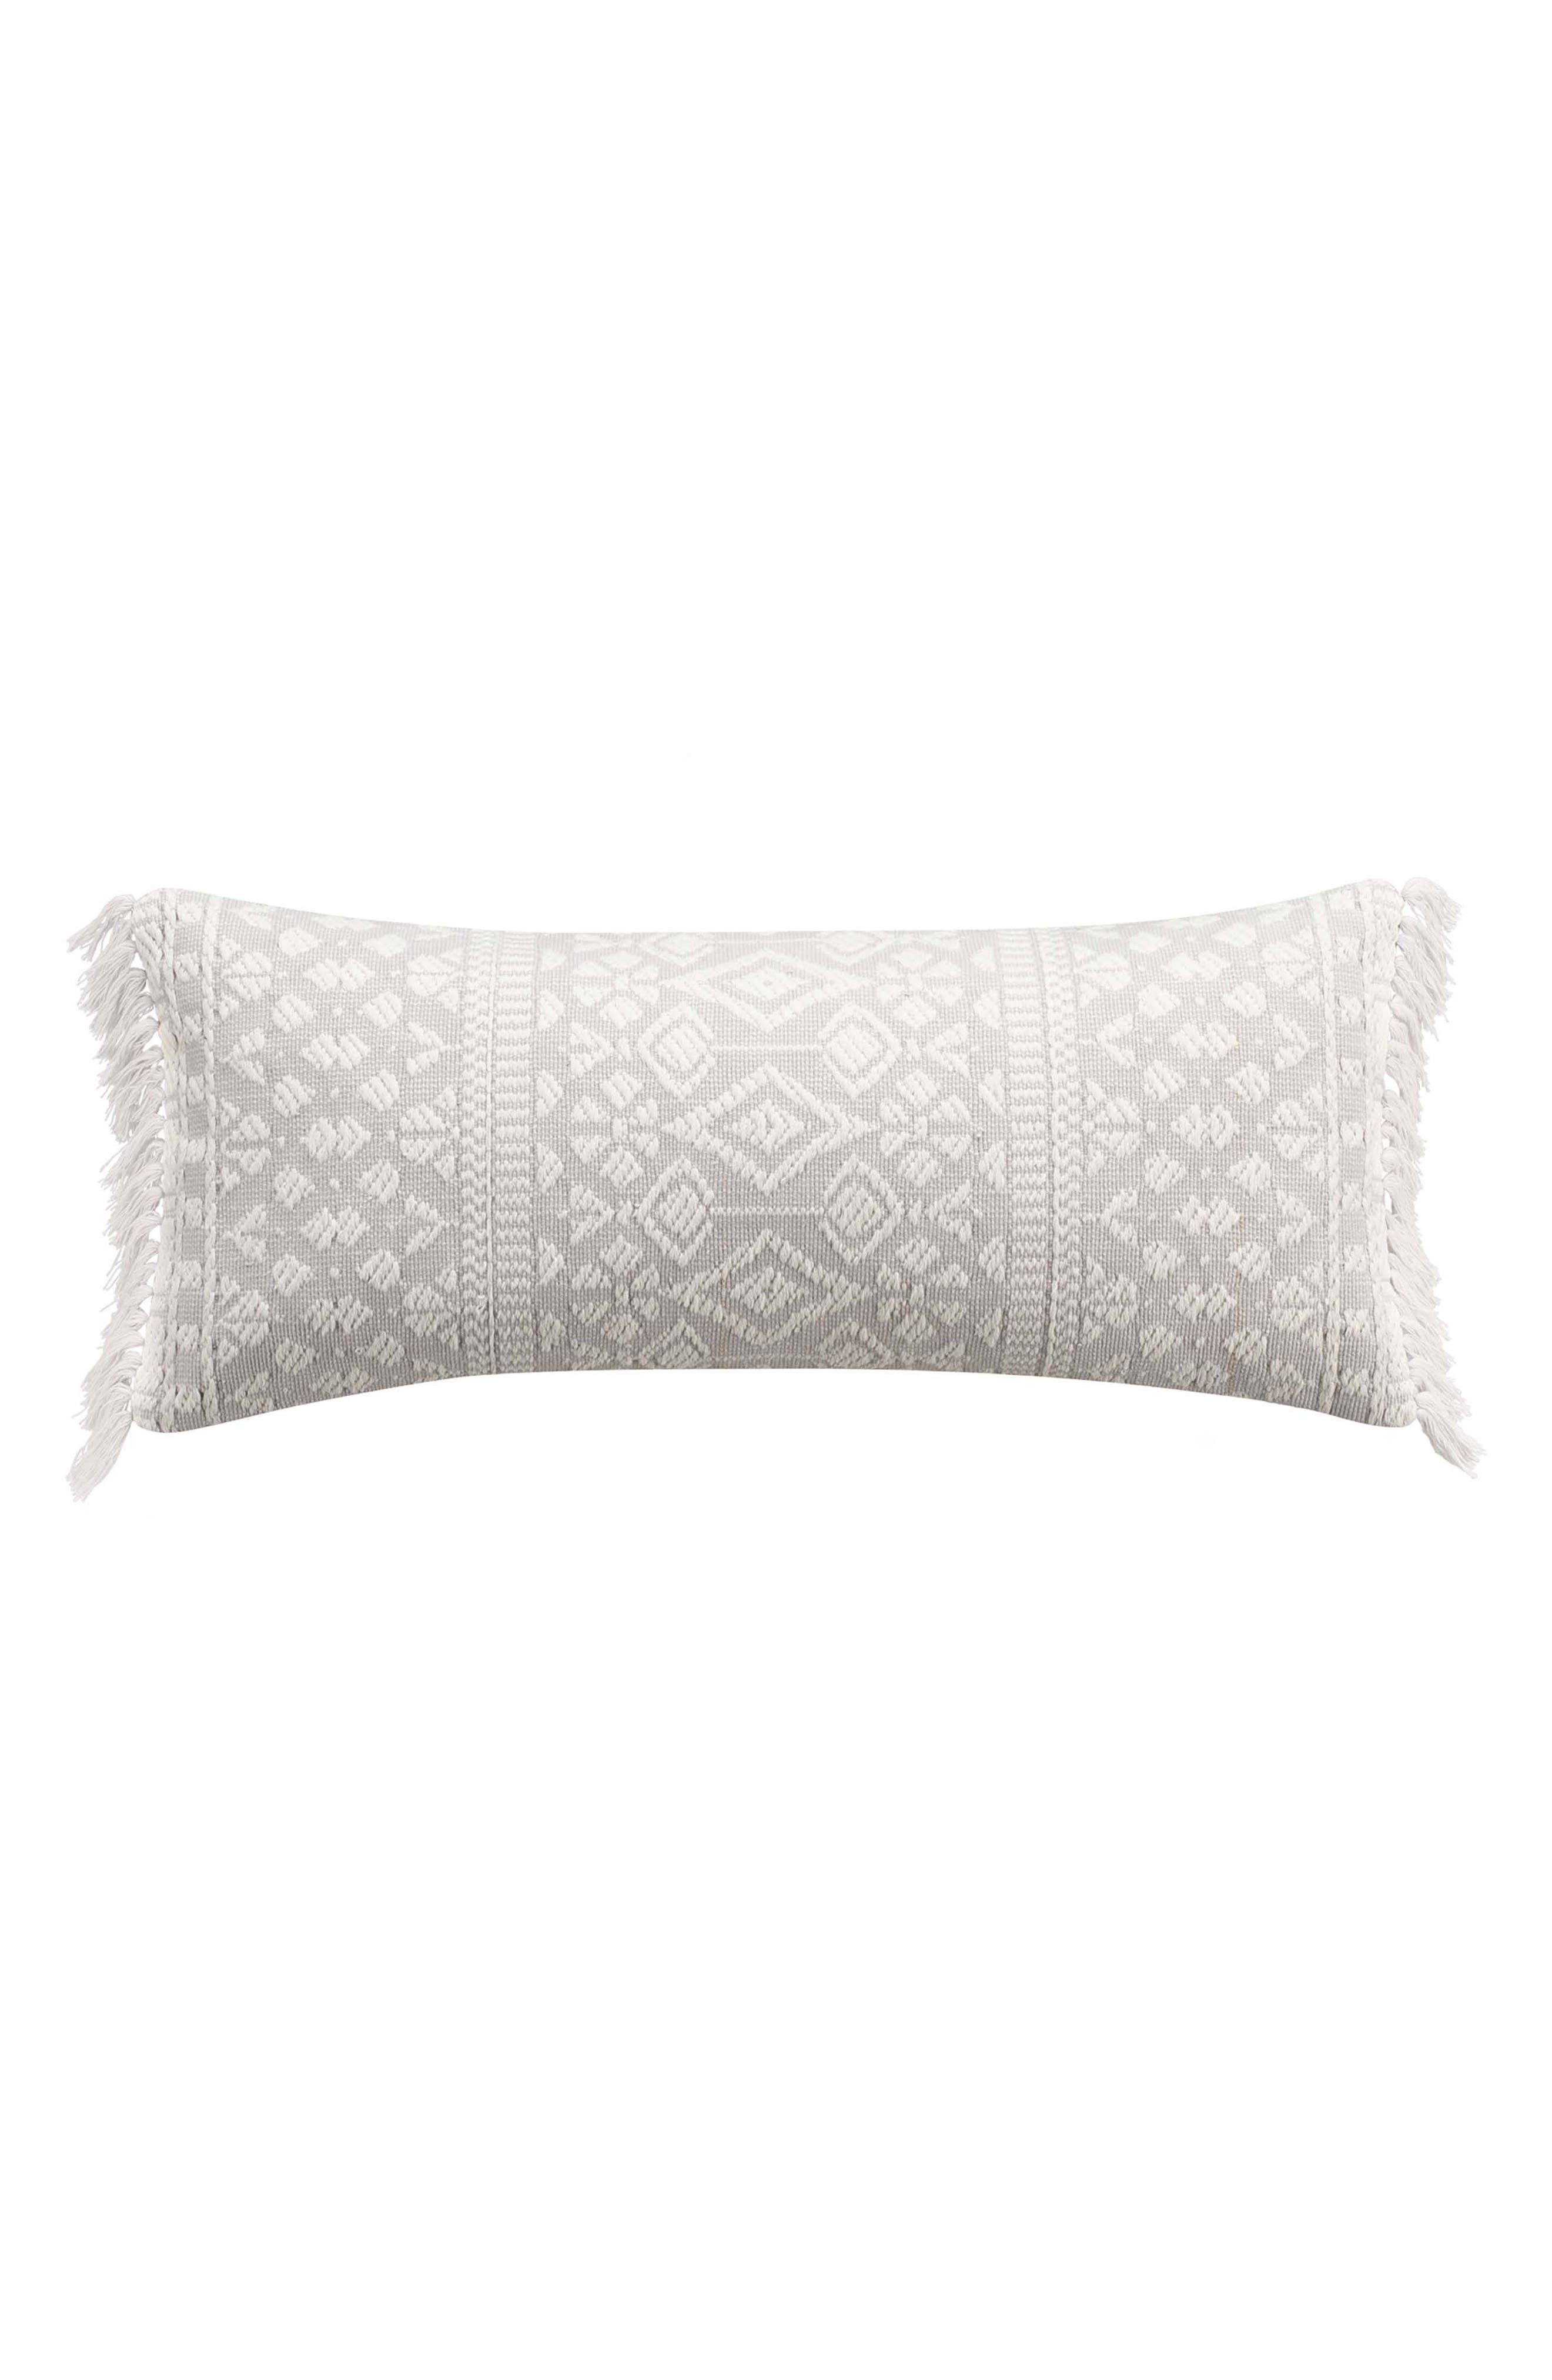 Main Image - cupcakes and cashmere Geometric Embroidered Accent Pillow